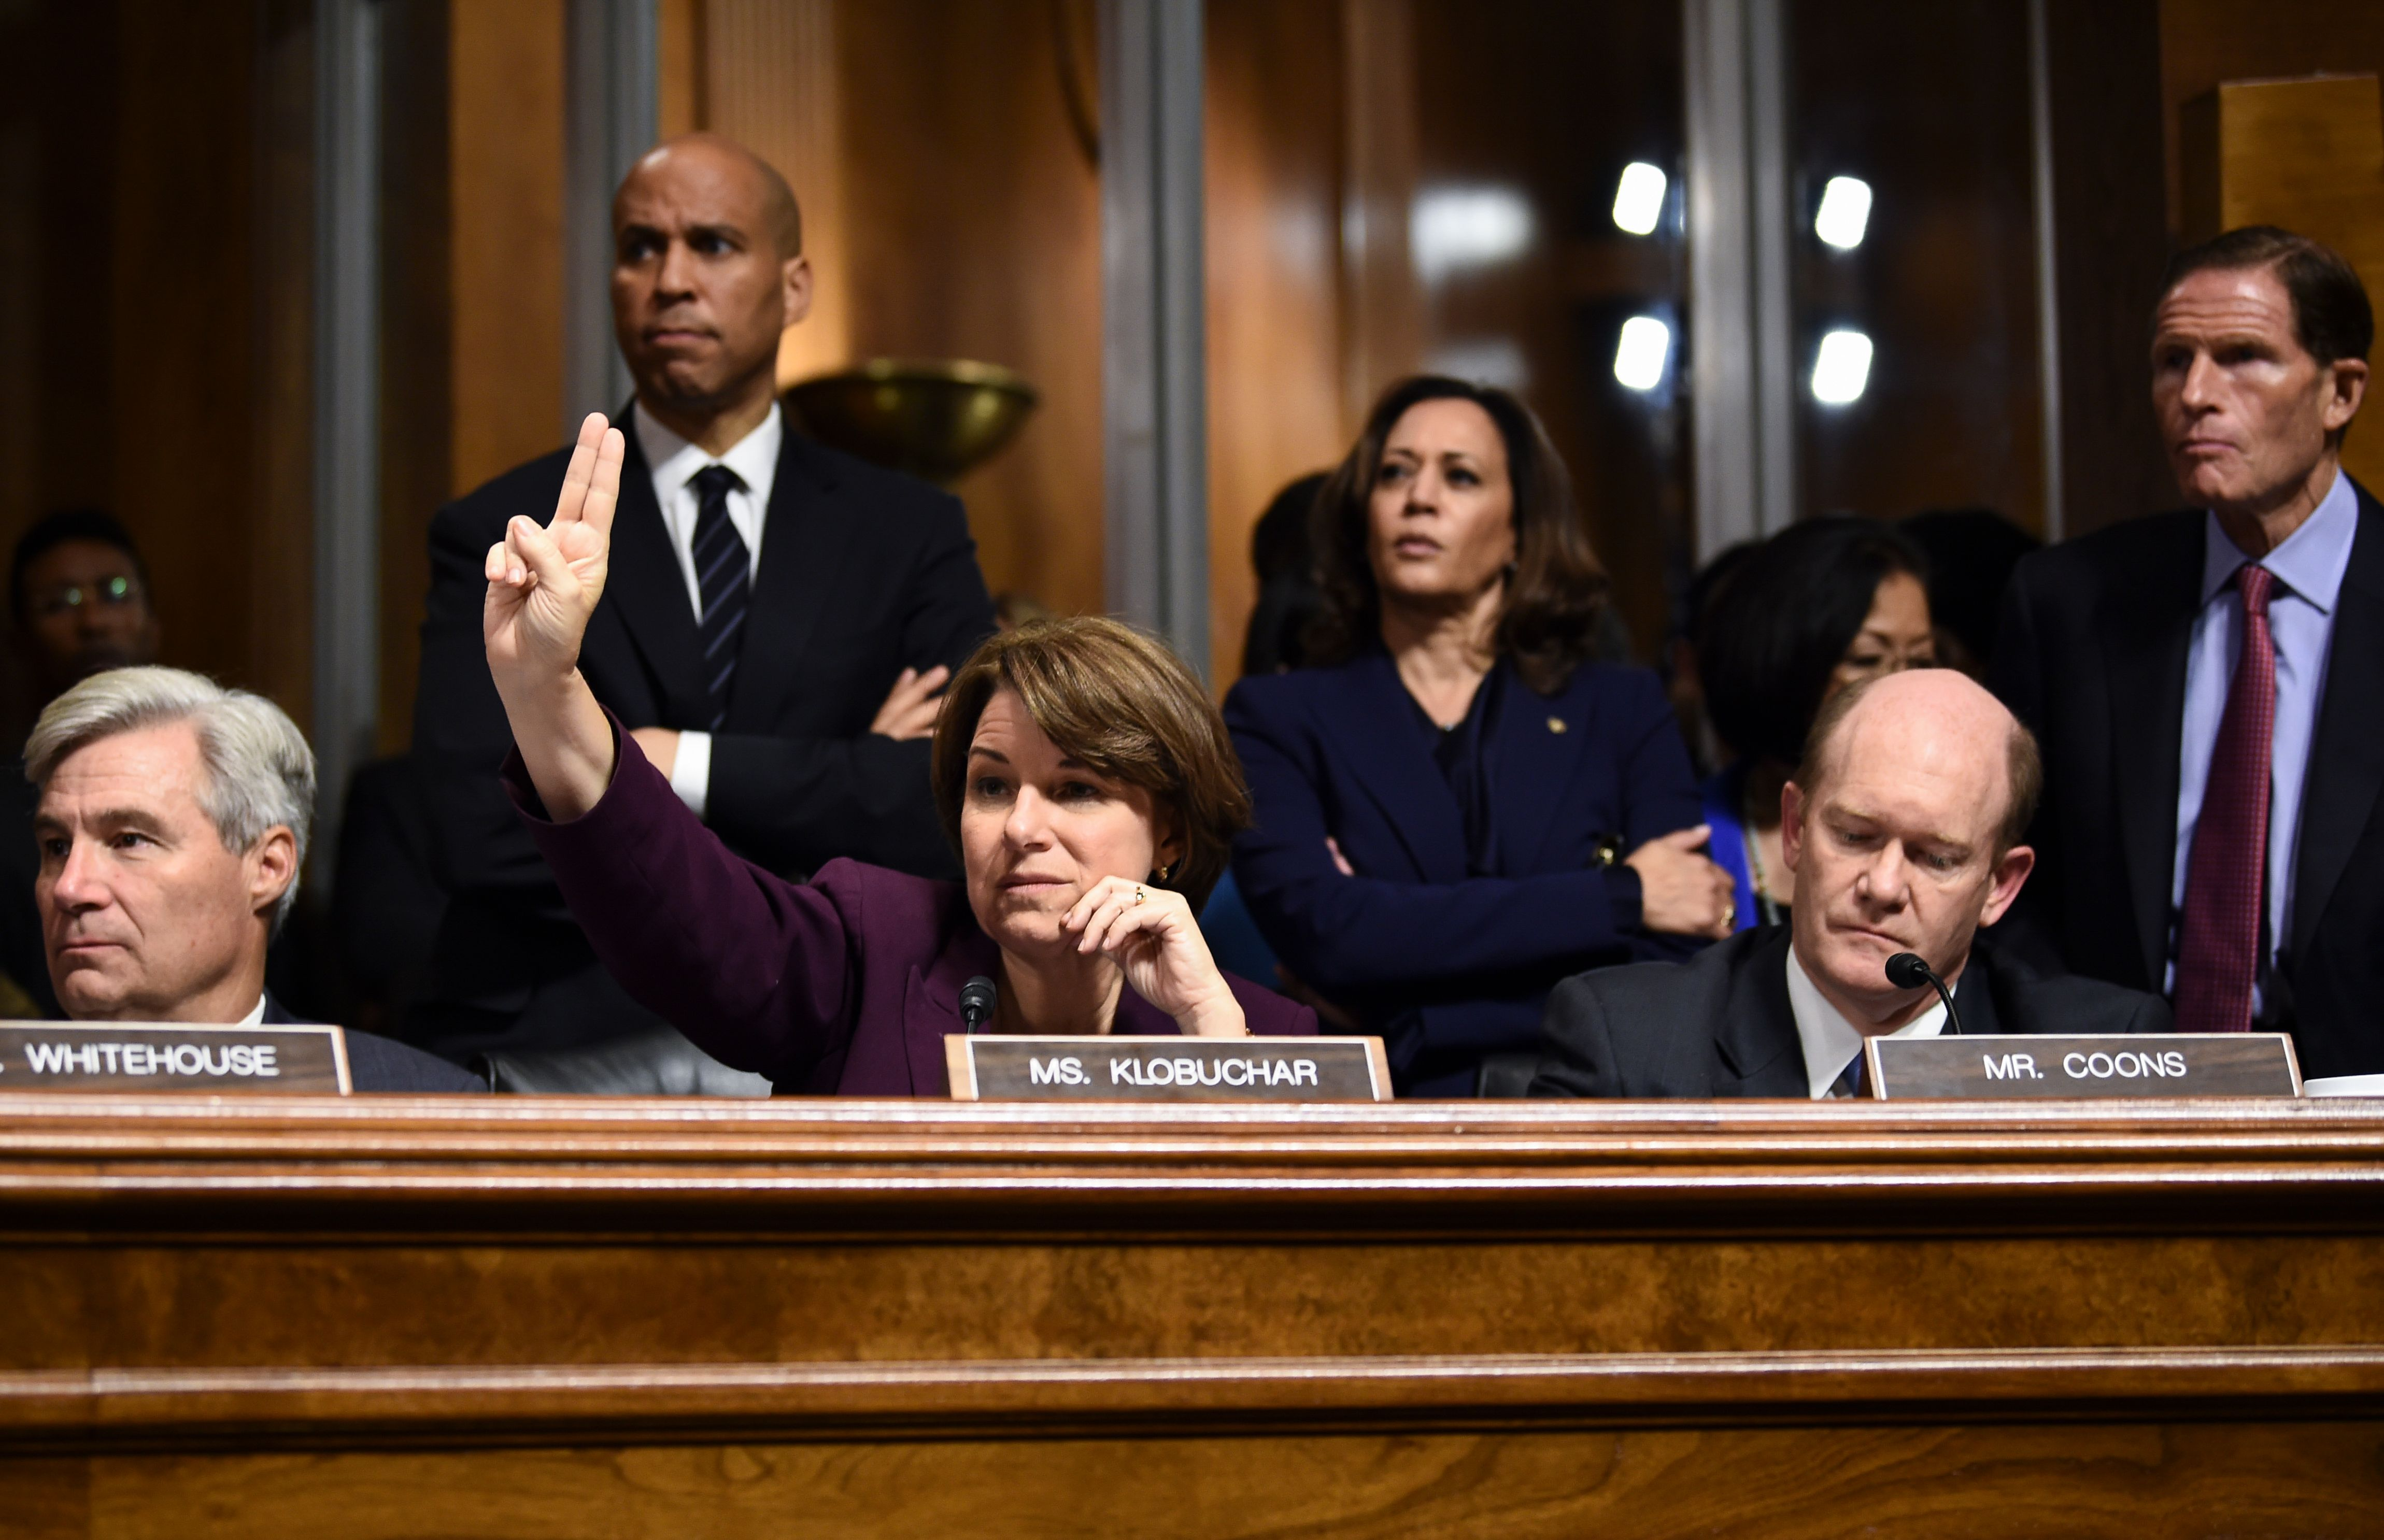 Sen. Amy Klobuchar during a hearing on Justice Brett Kavanaugh's nomination on September 28, 2018. (Brendan Smialowski/AFP/Getty Images)